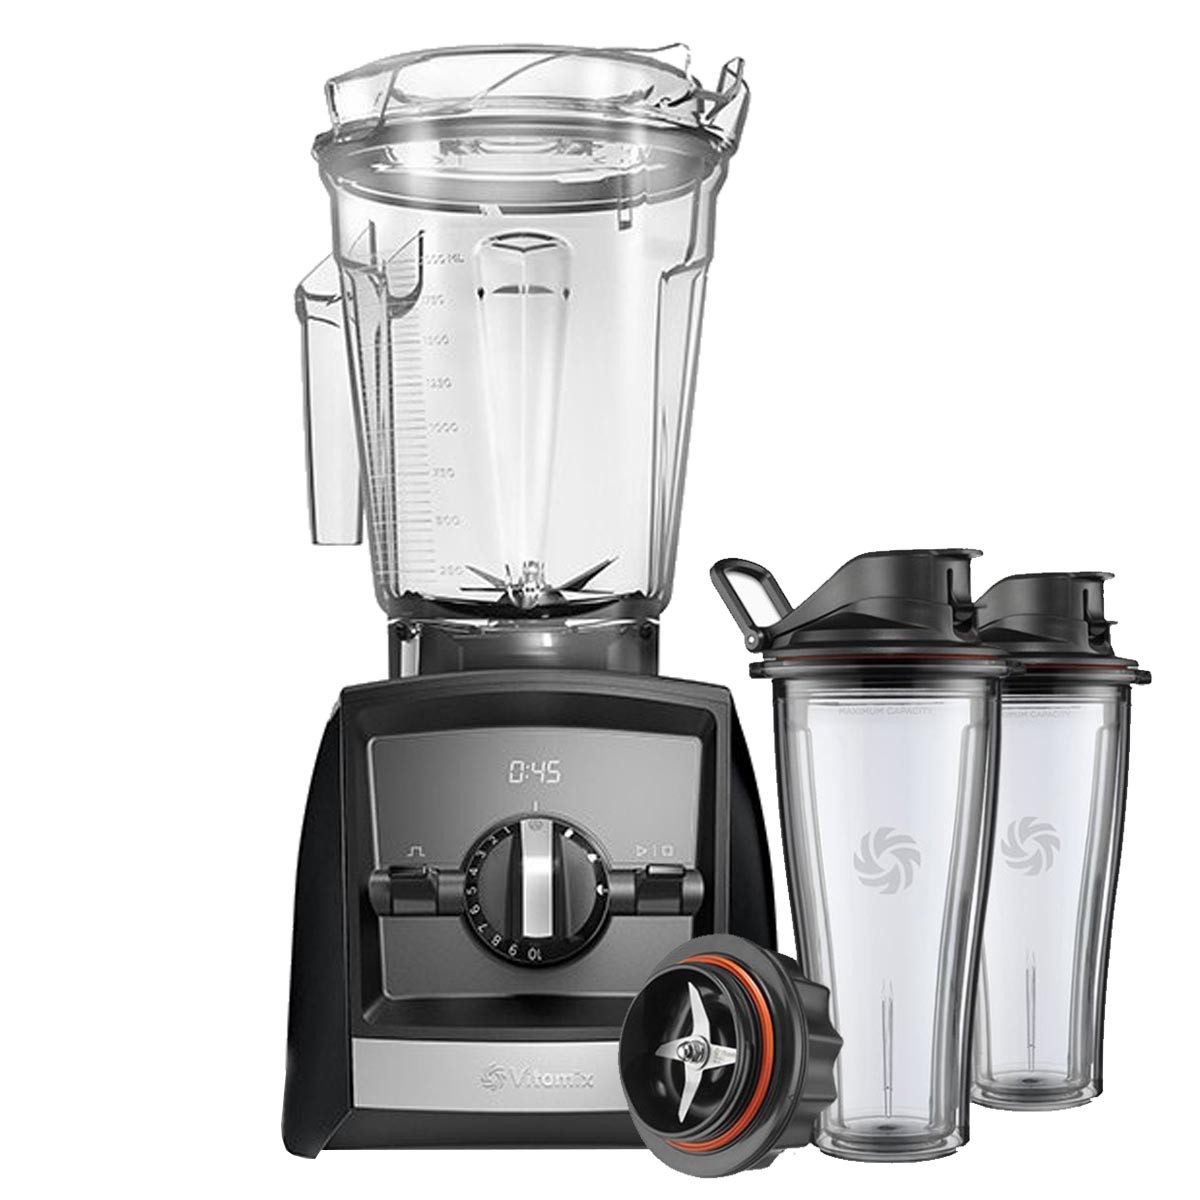 Vitamix Ascent Series A2500i Blender in Black with 600ml Blending Cup Starter Kit